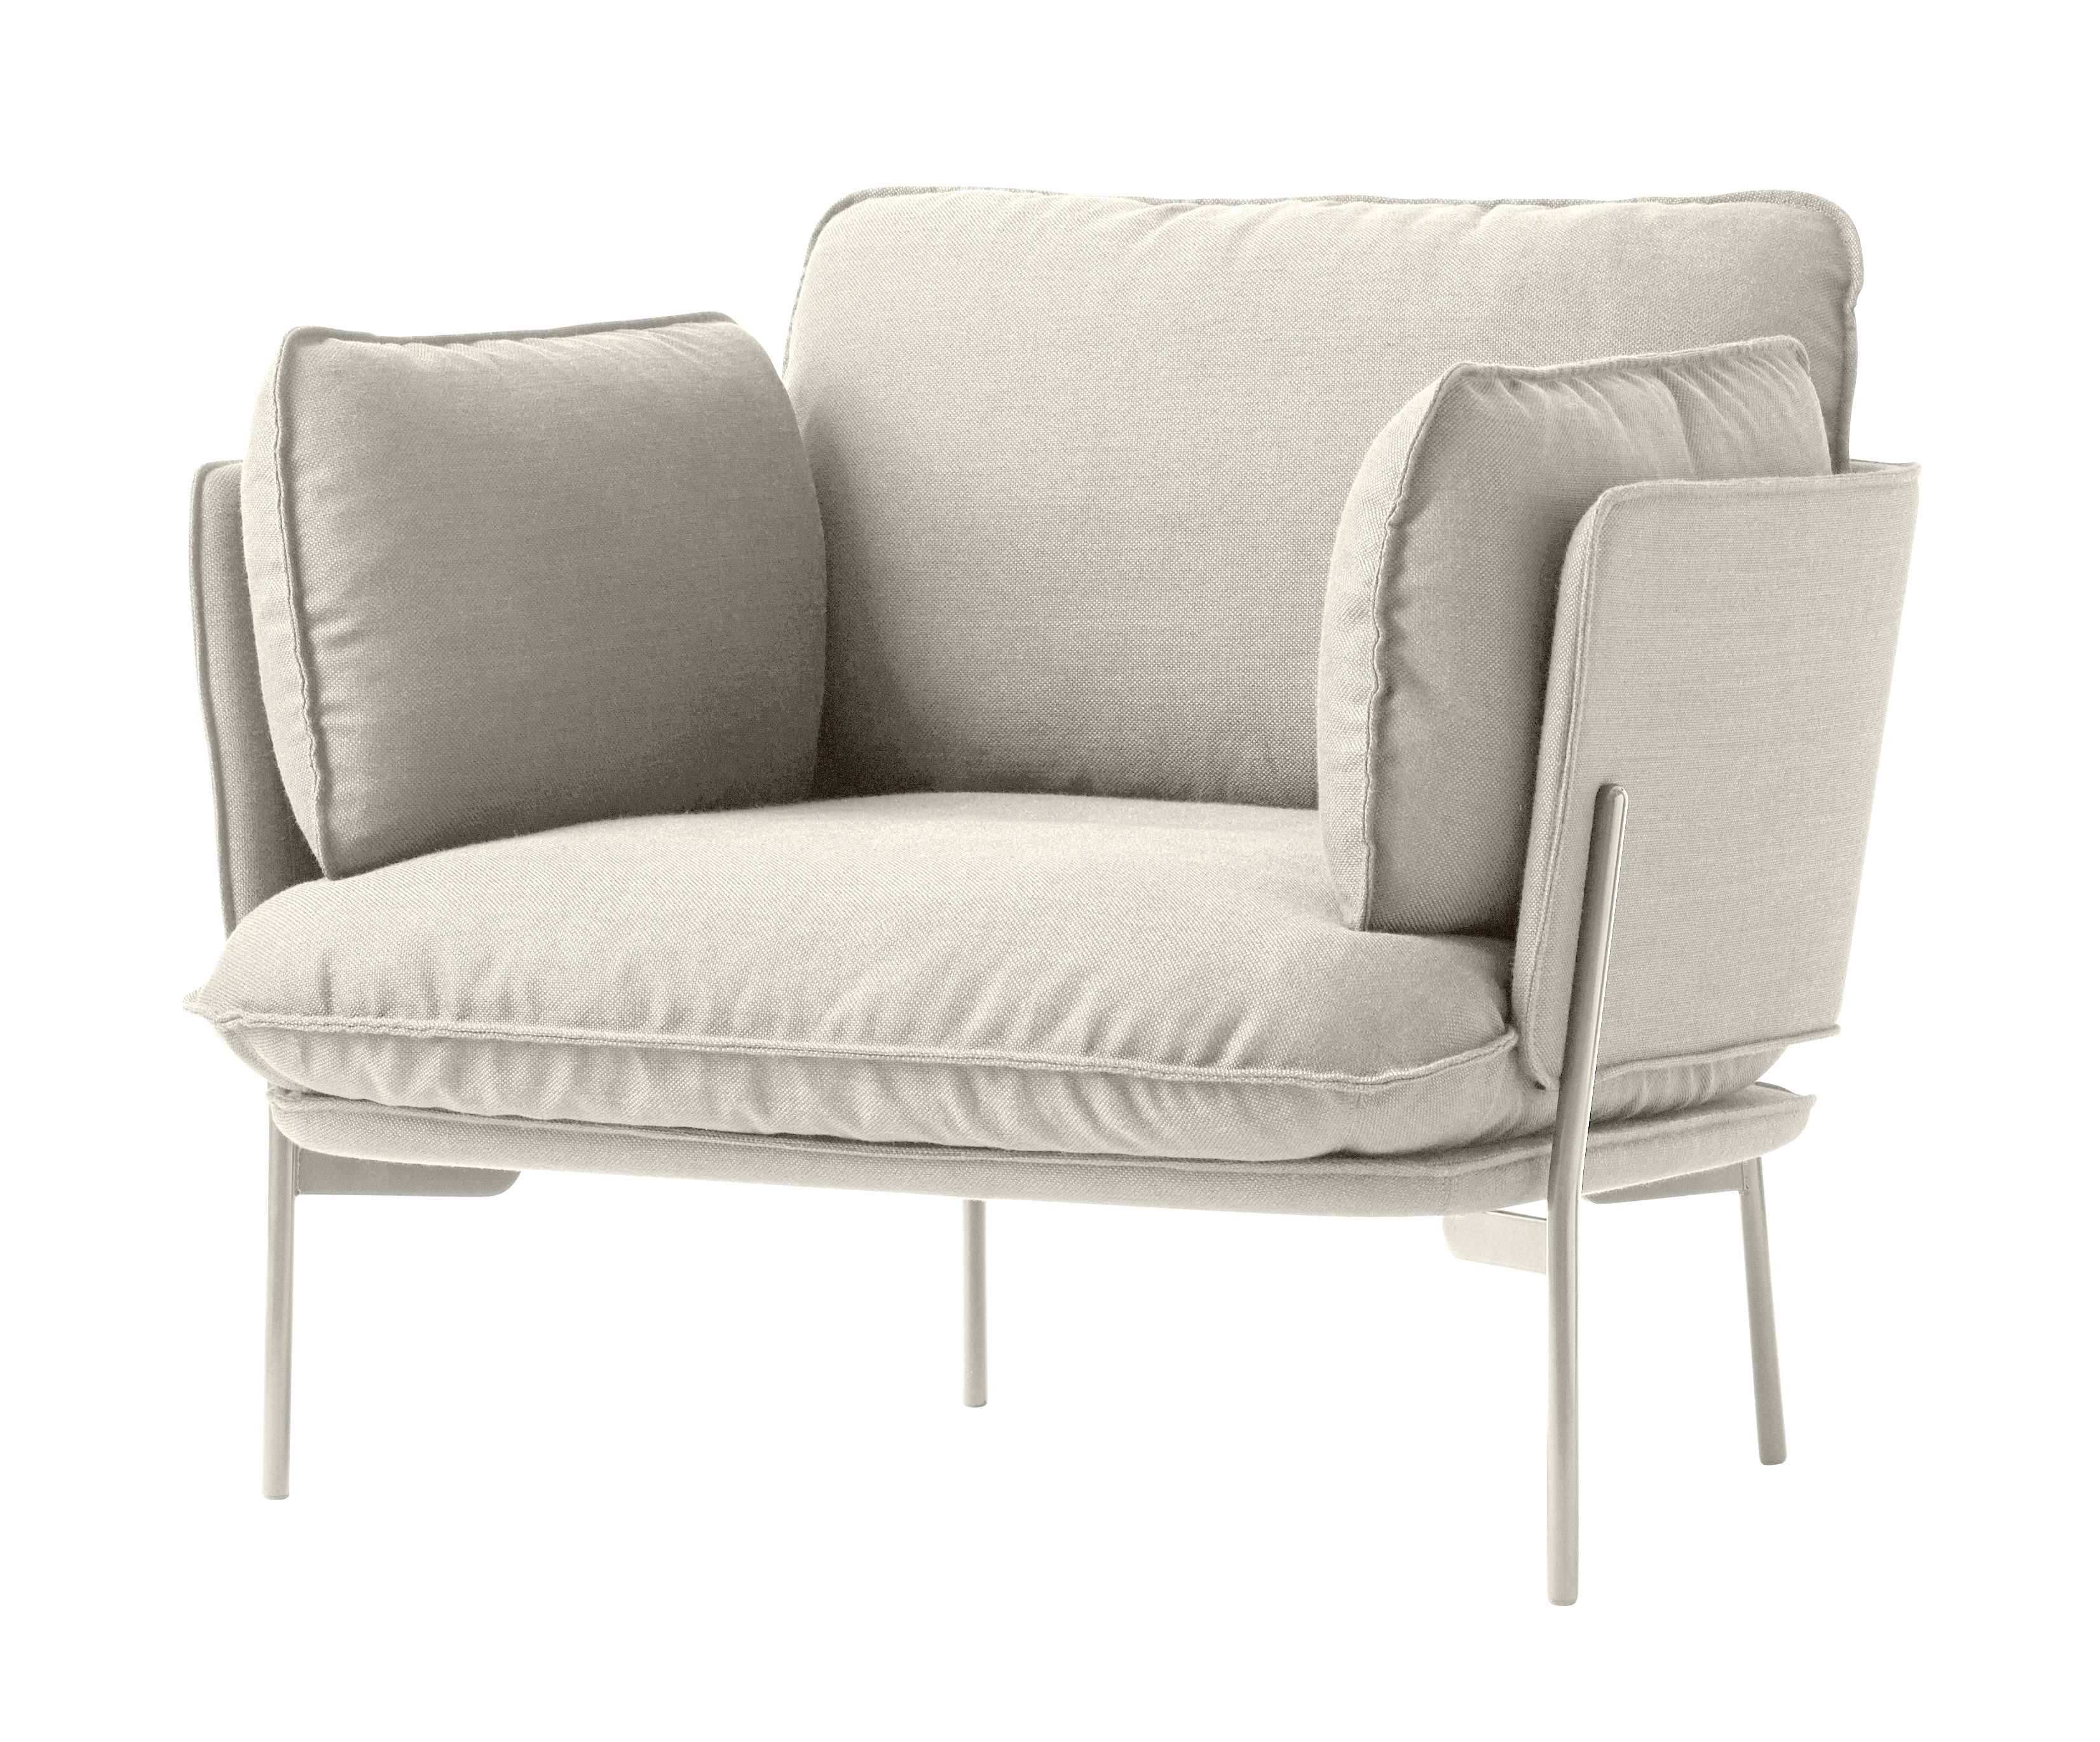 Cloud LN1 Armchair Ivory by &tradition